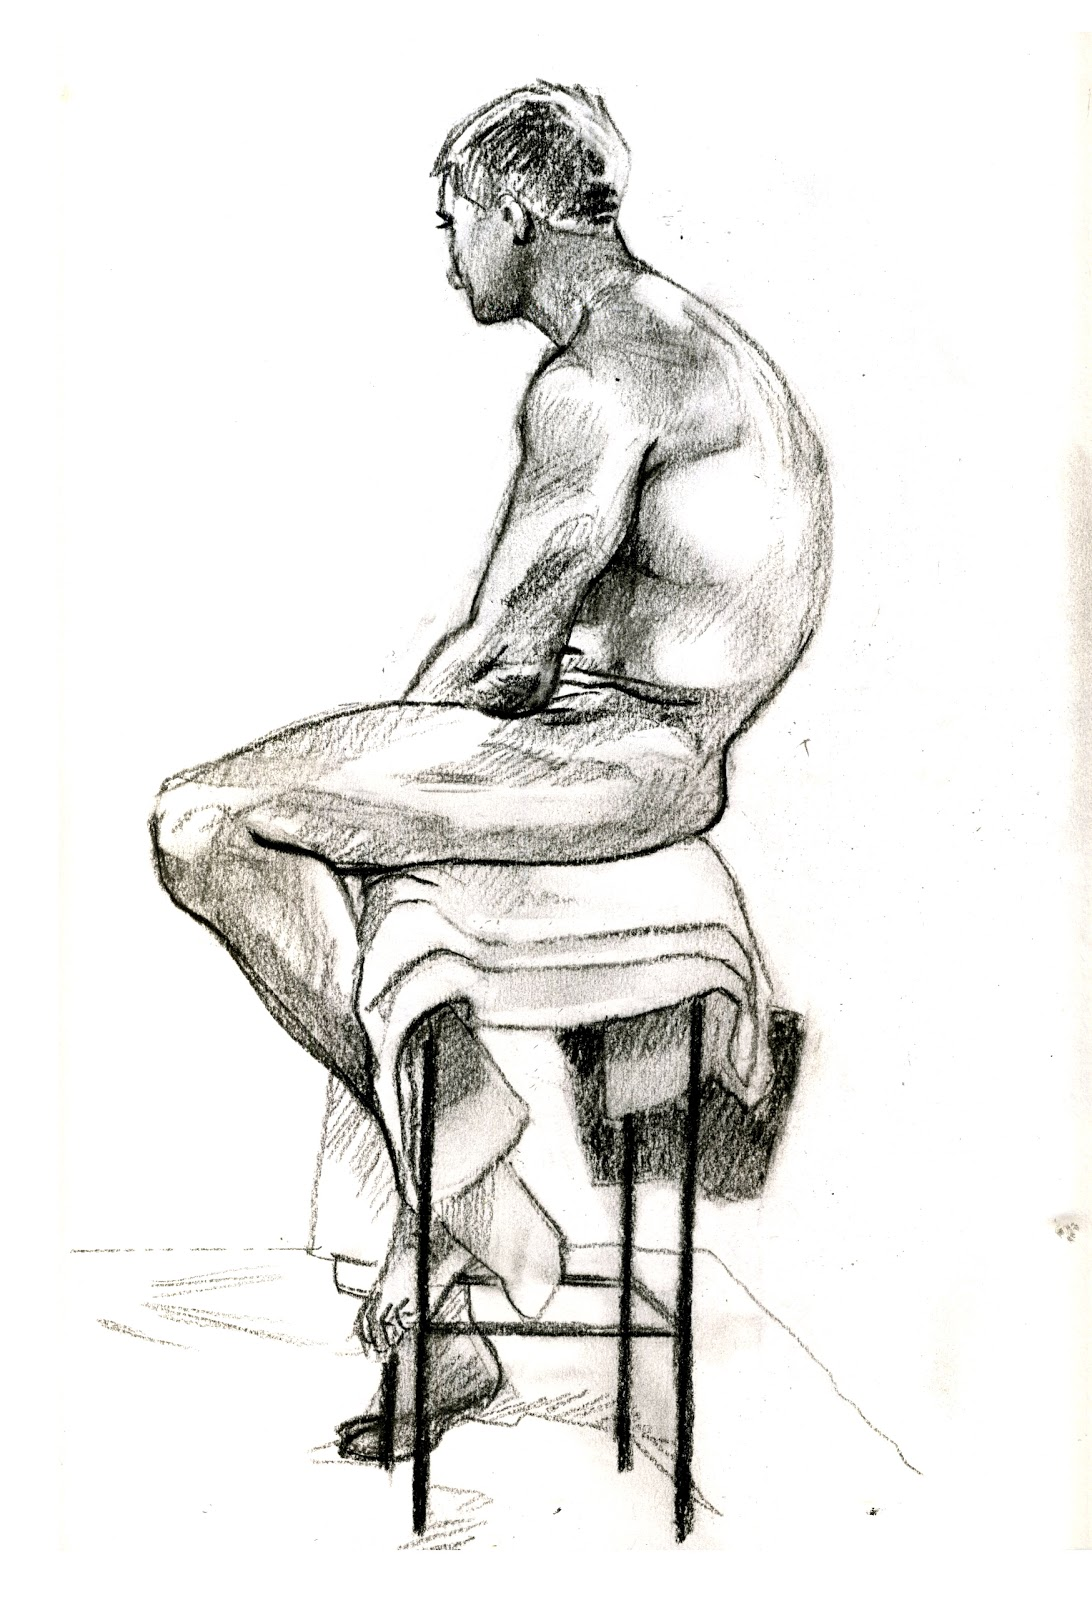 Man sitting in chair drawing - More Life Drawing